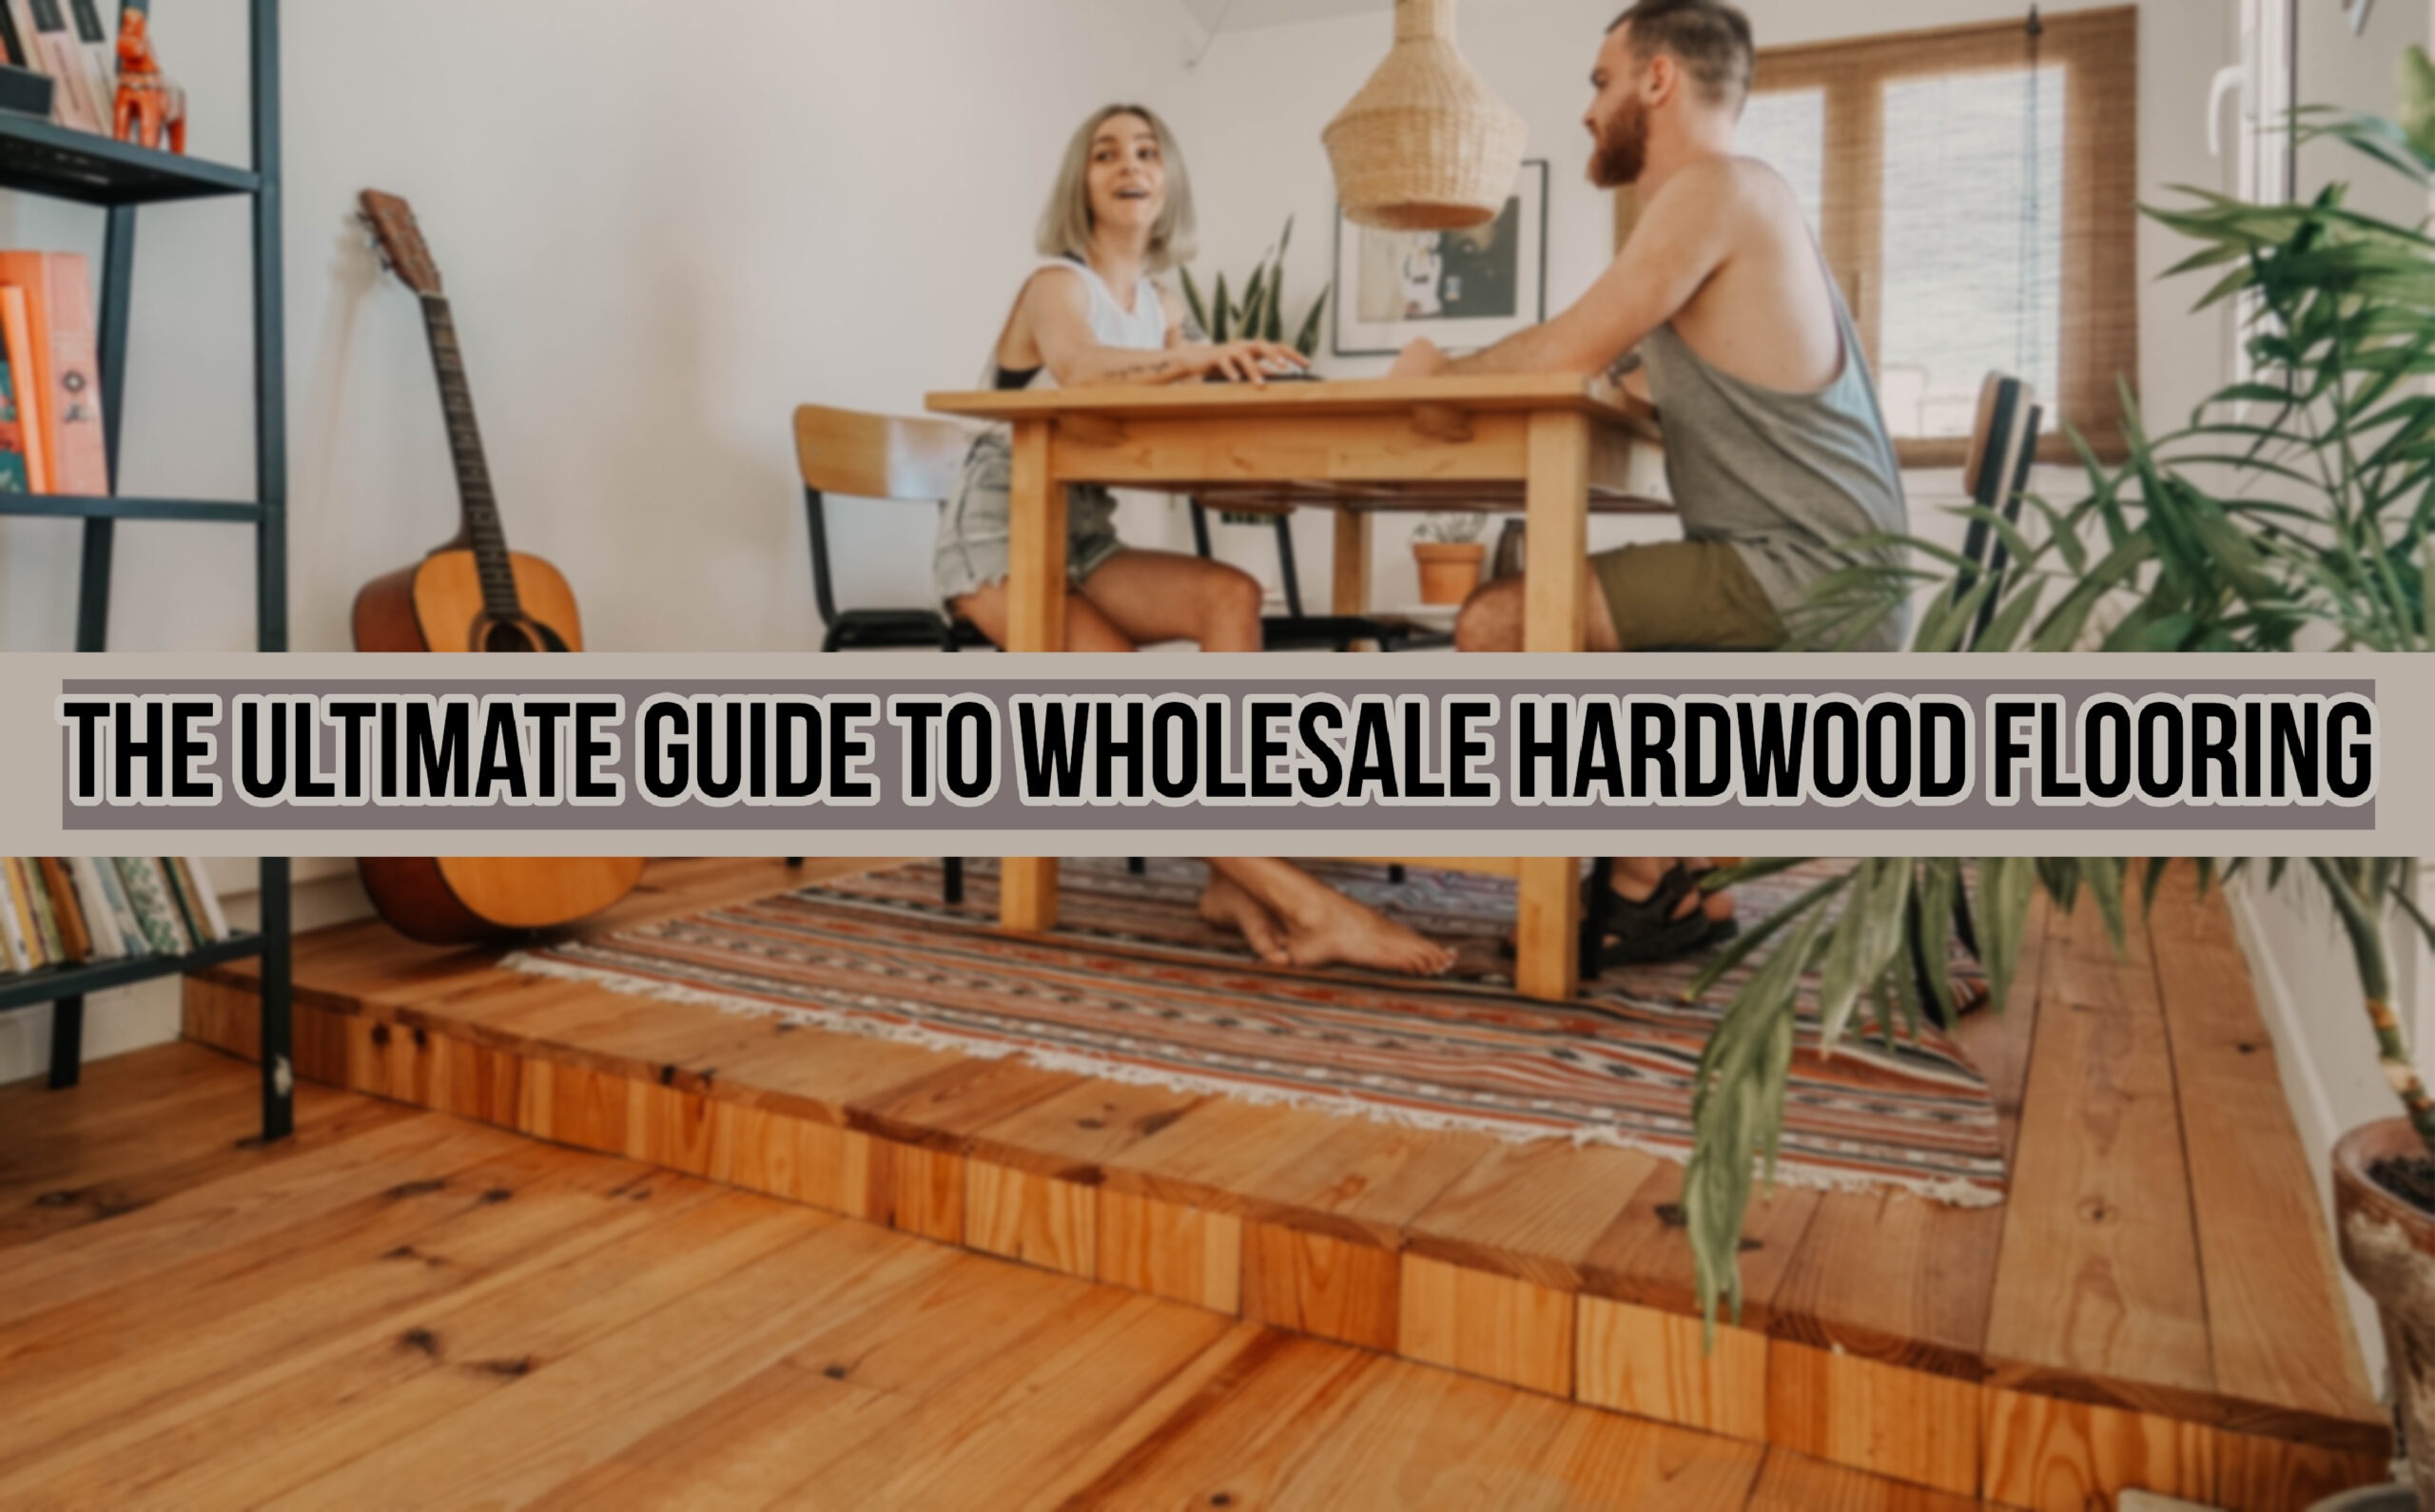 Wholesale hardwood Flooring, The Ultimate Guide to Wholesale Hardwood Flooring